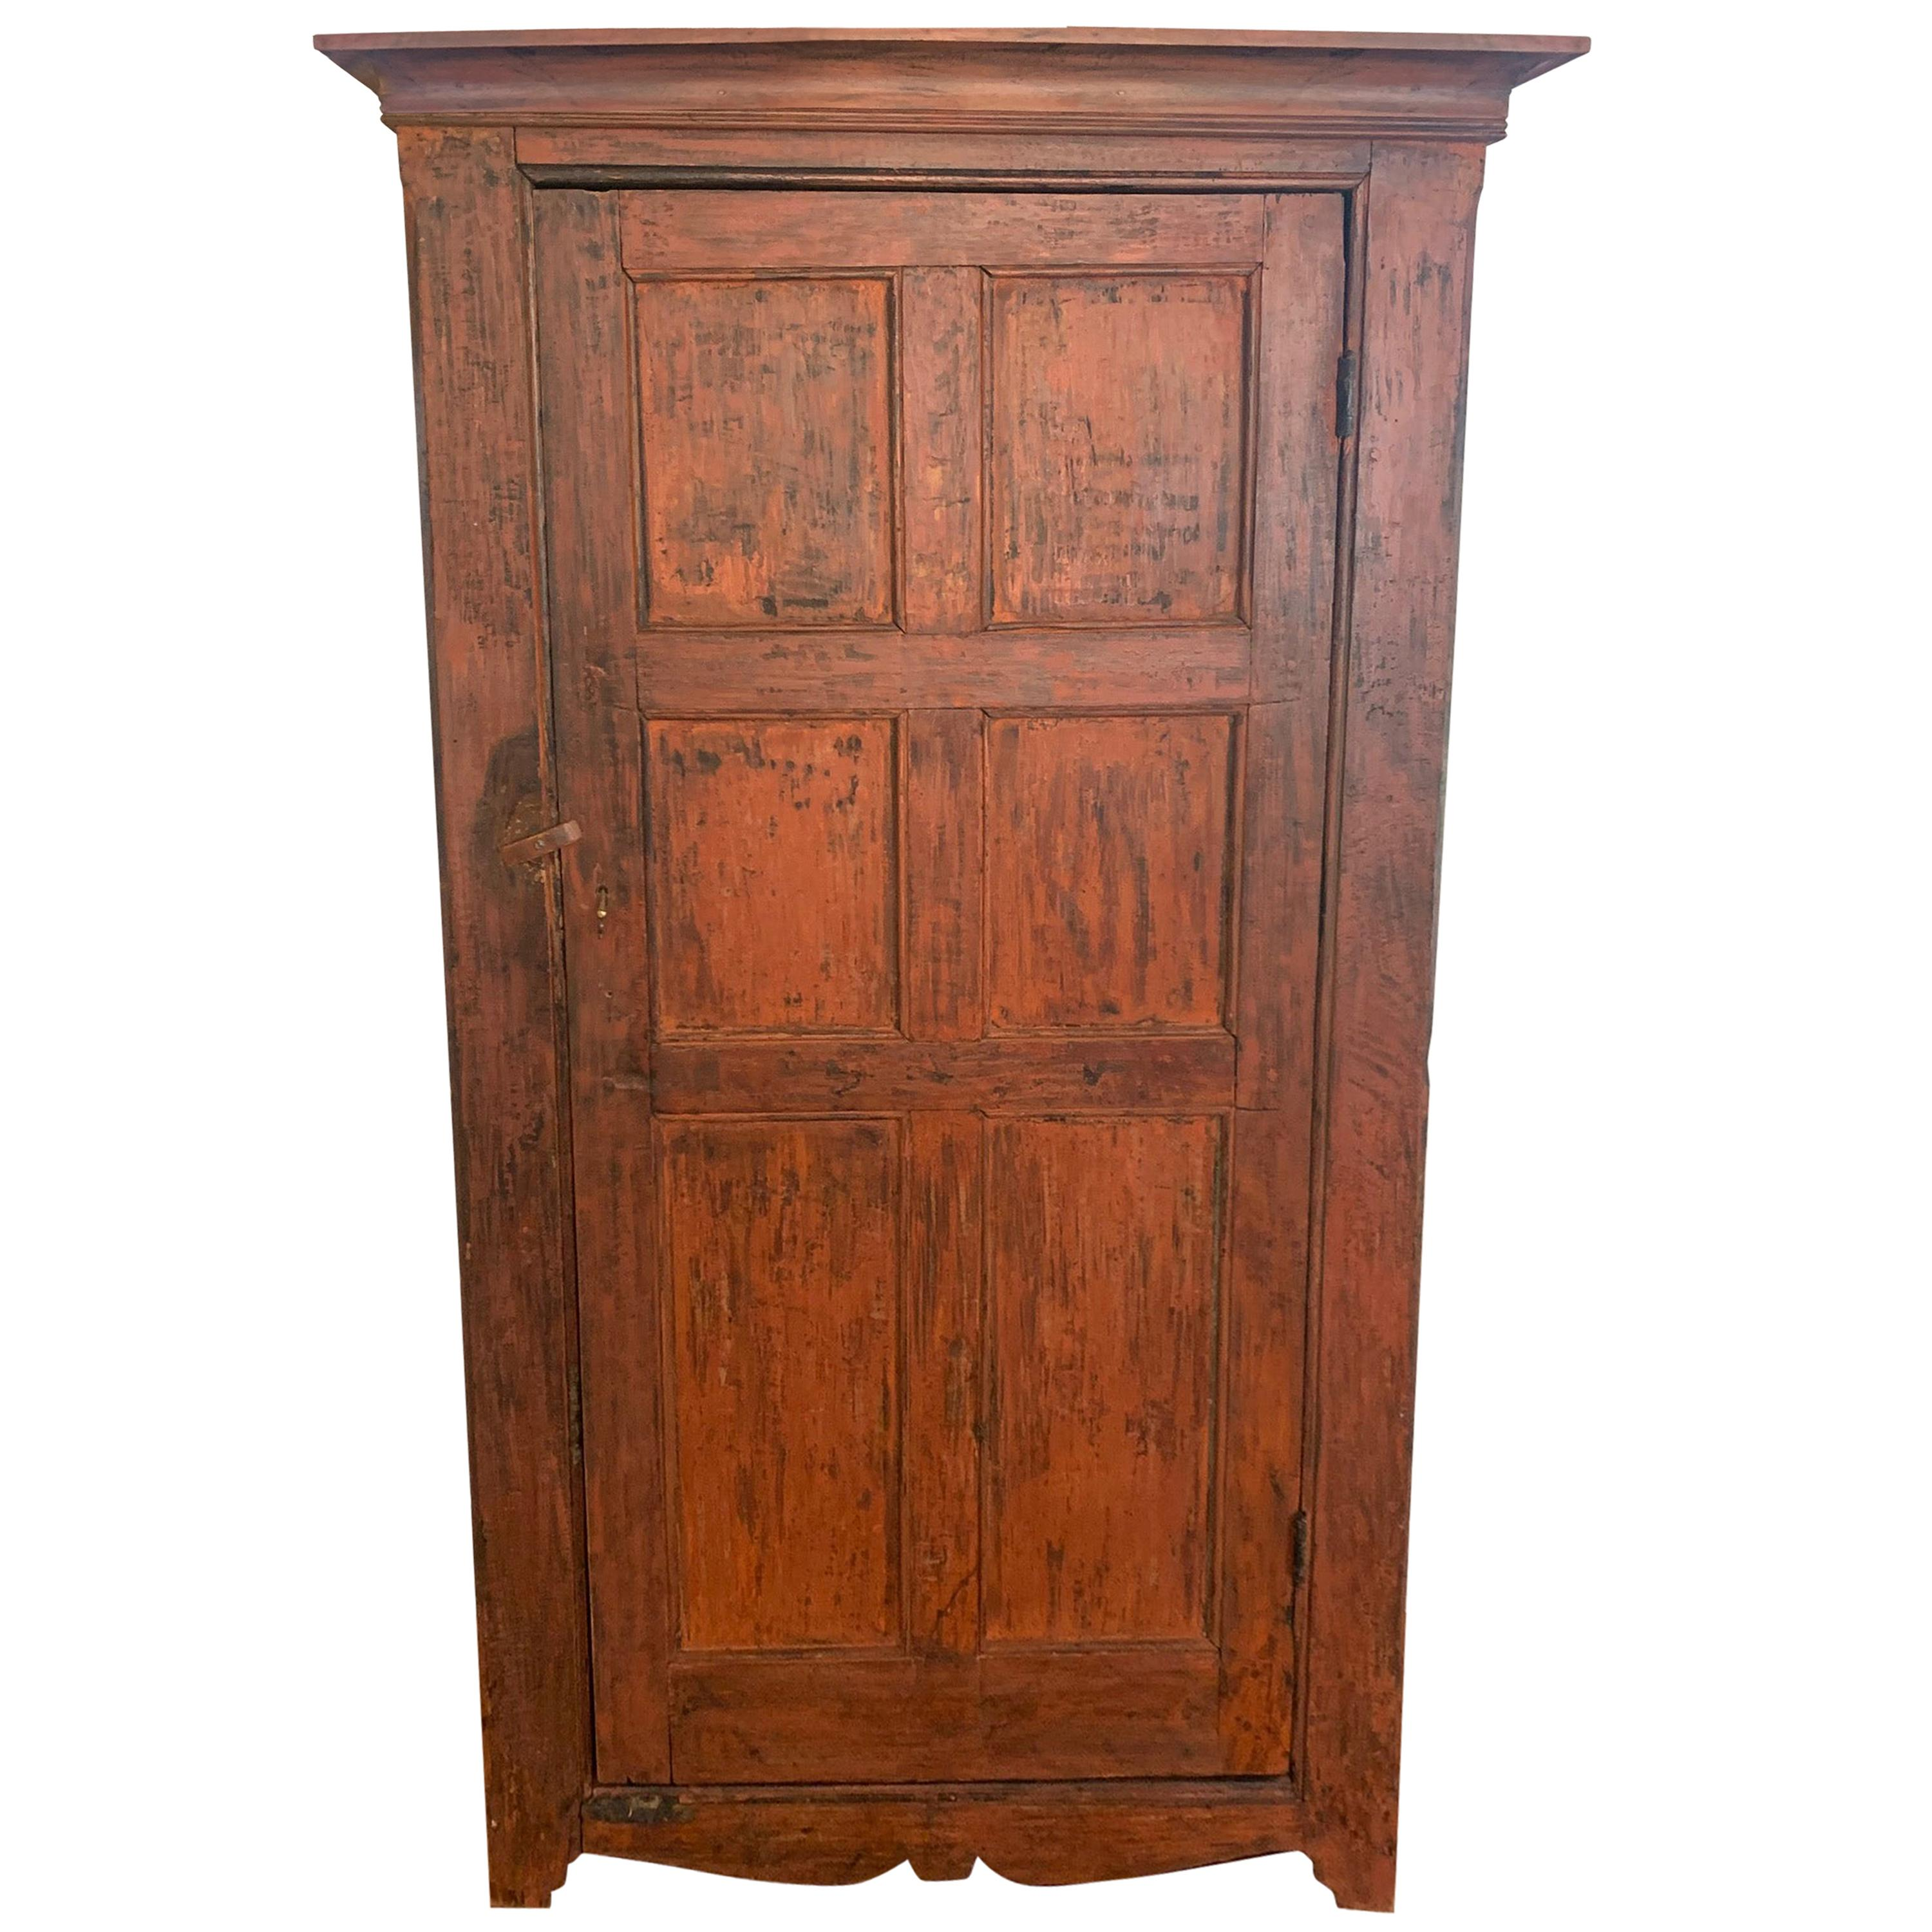 Warm Country Vermont Distressed Painted Cupboard